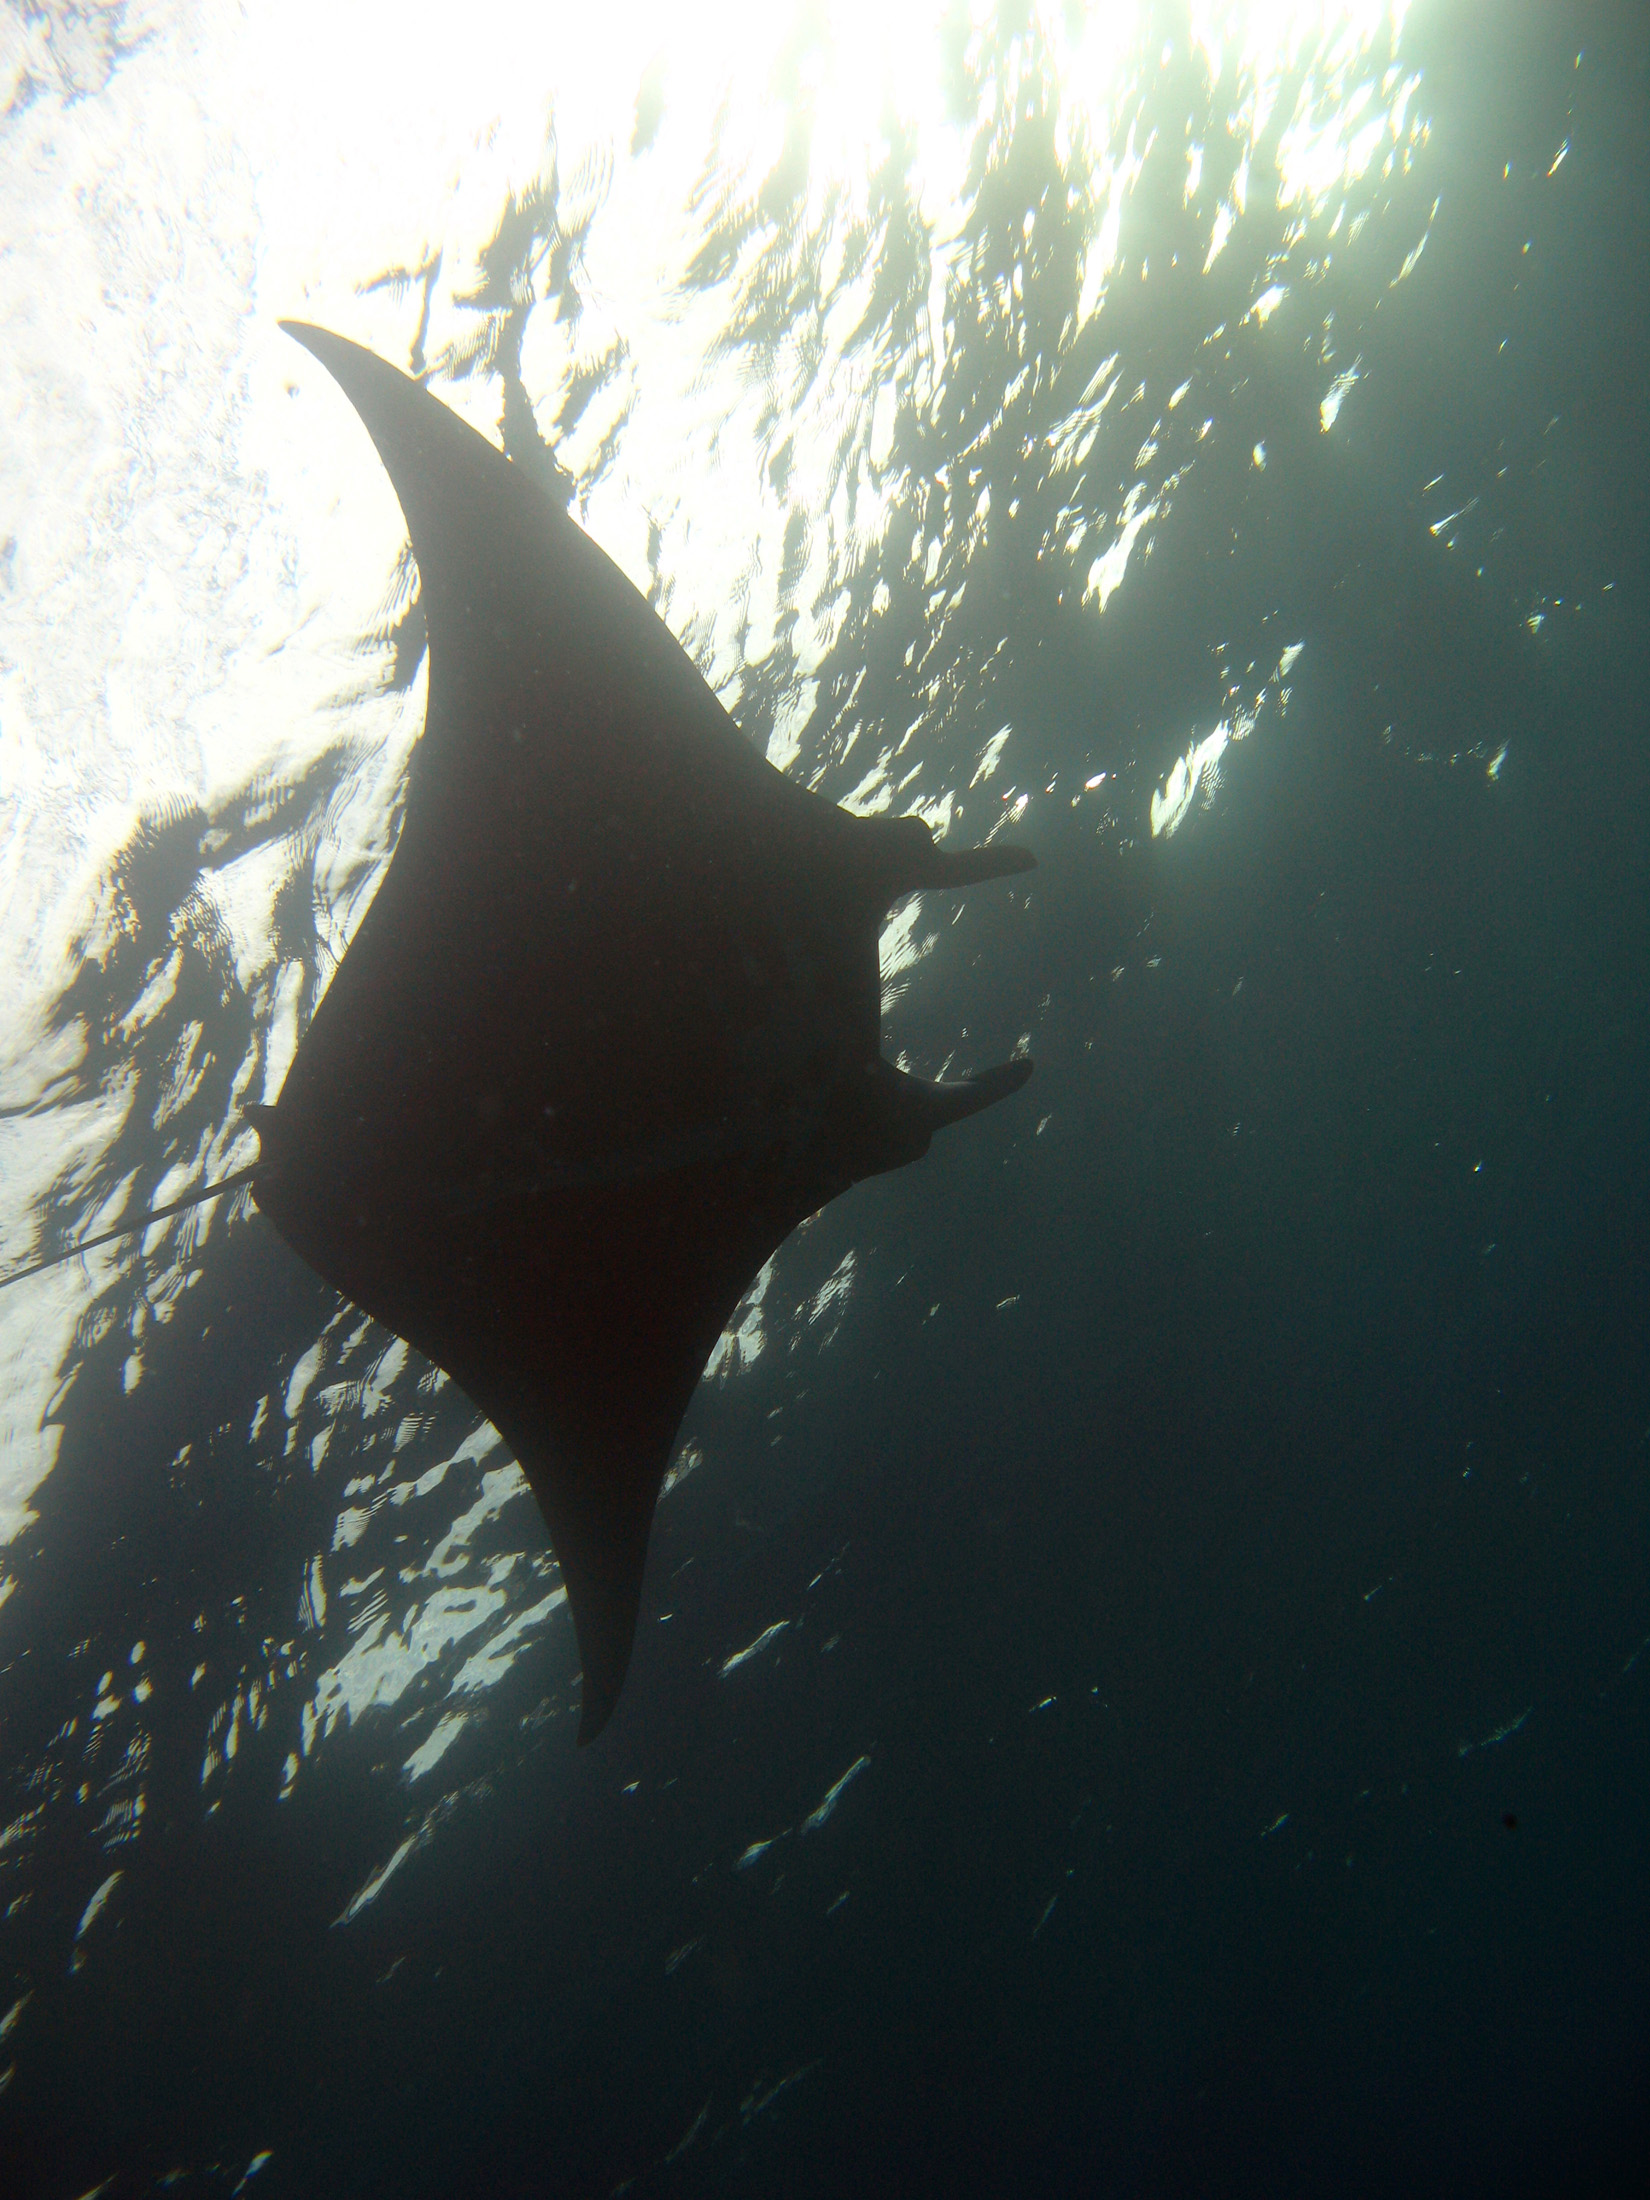 Large Manta ray swimming overhead in the ocean as it goes on its way feeding on plankton